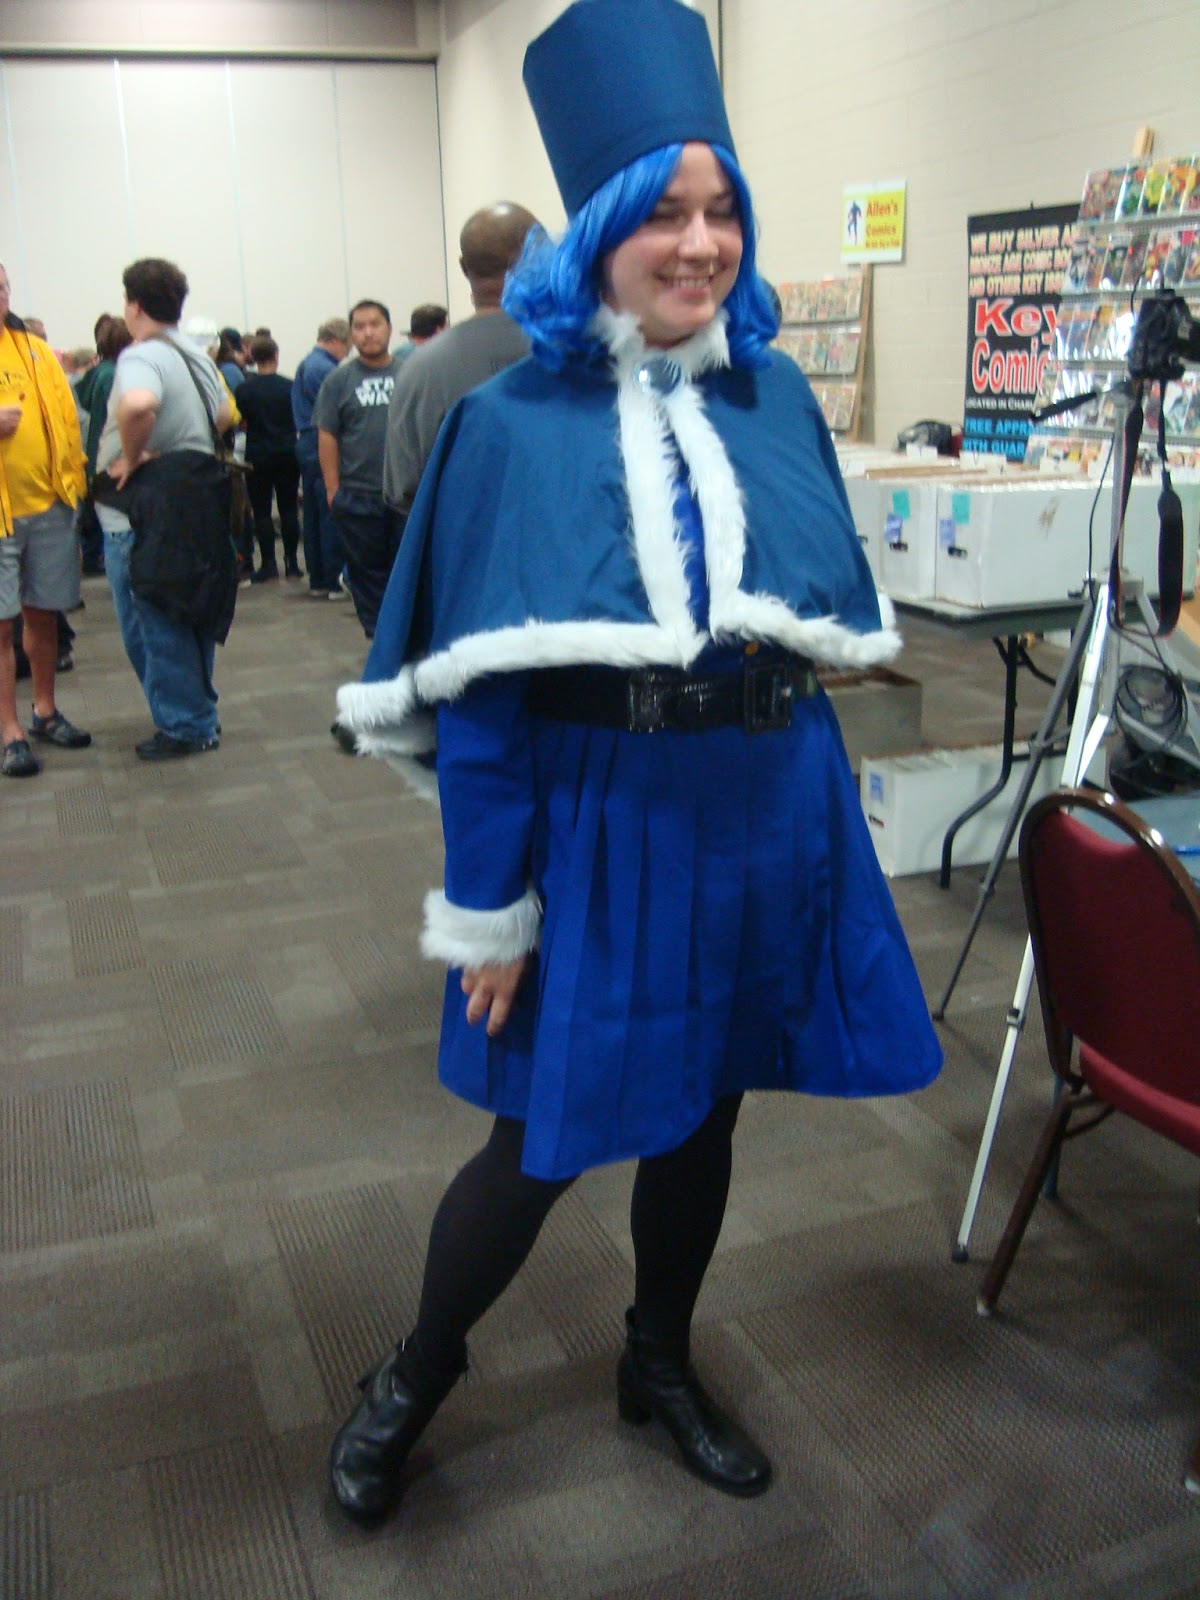 The Lady In Blue Juvia From Anime Fairy Tail Was Using Her Talent Of Photography To Take Green Screen Photos Con Goers